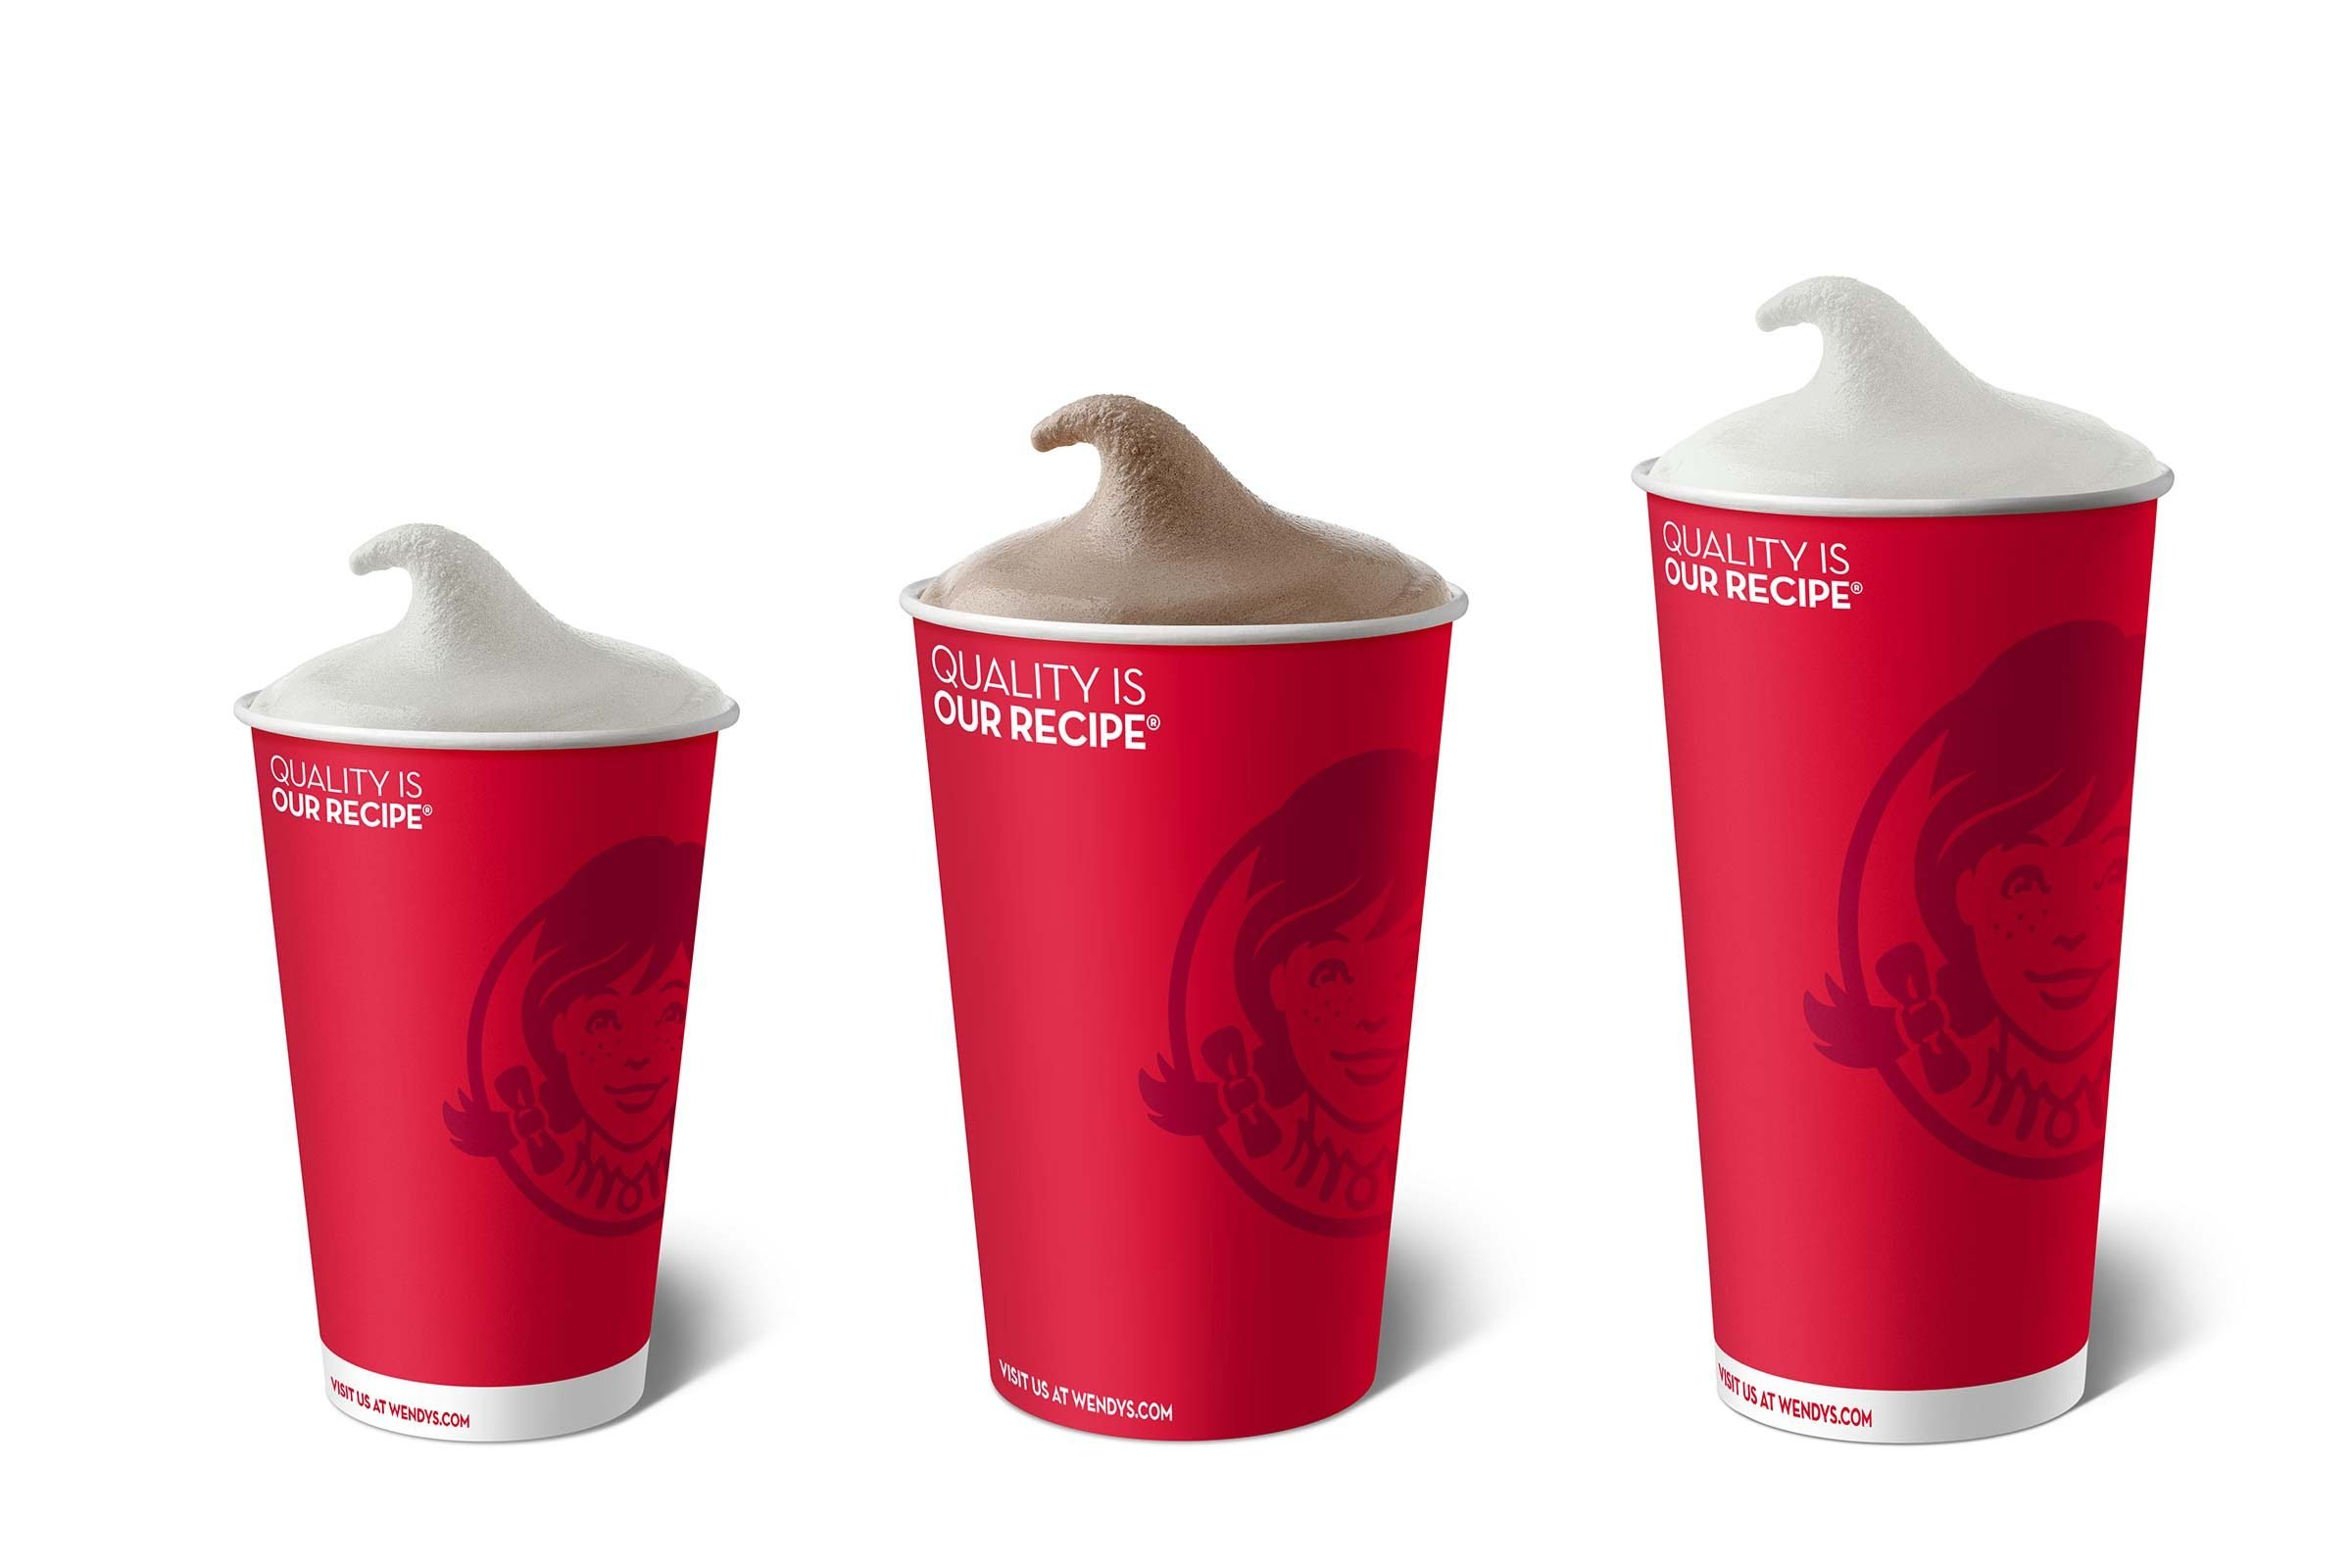 Never Knew About the Wendy's Frosty